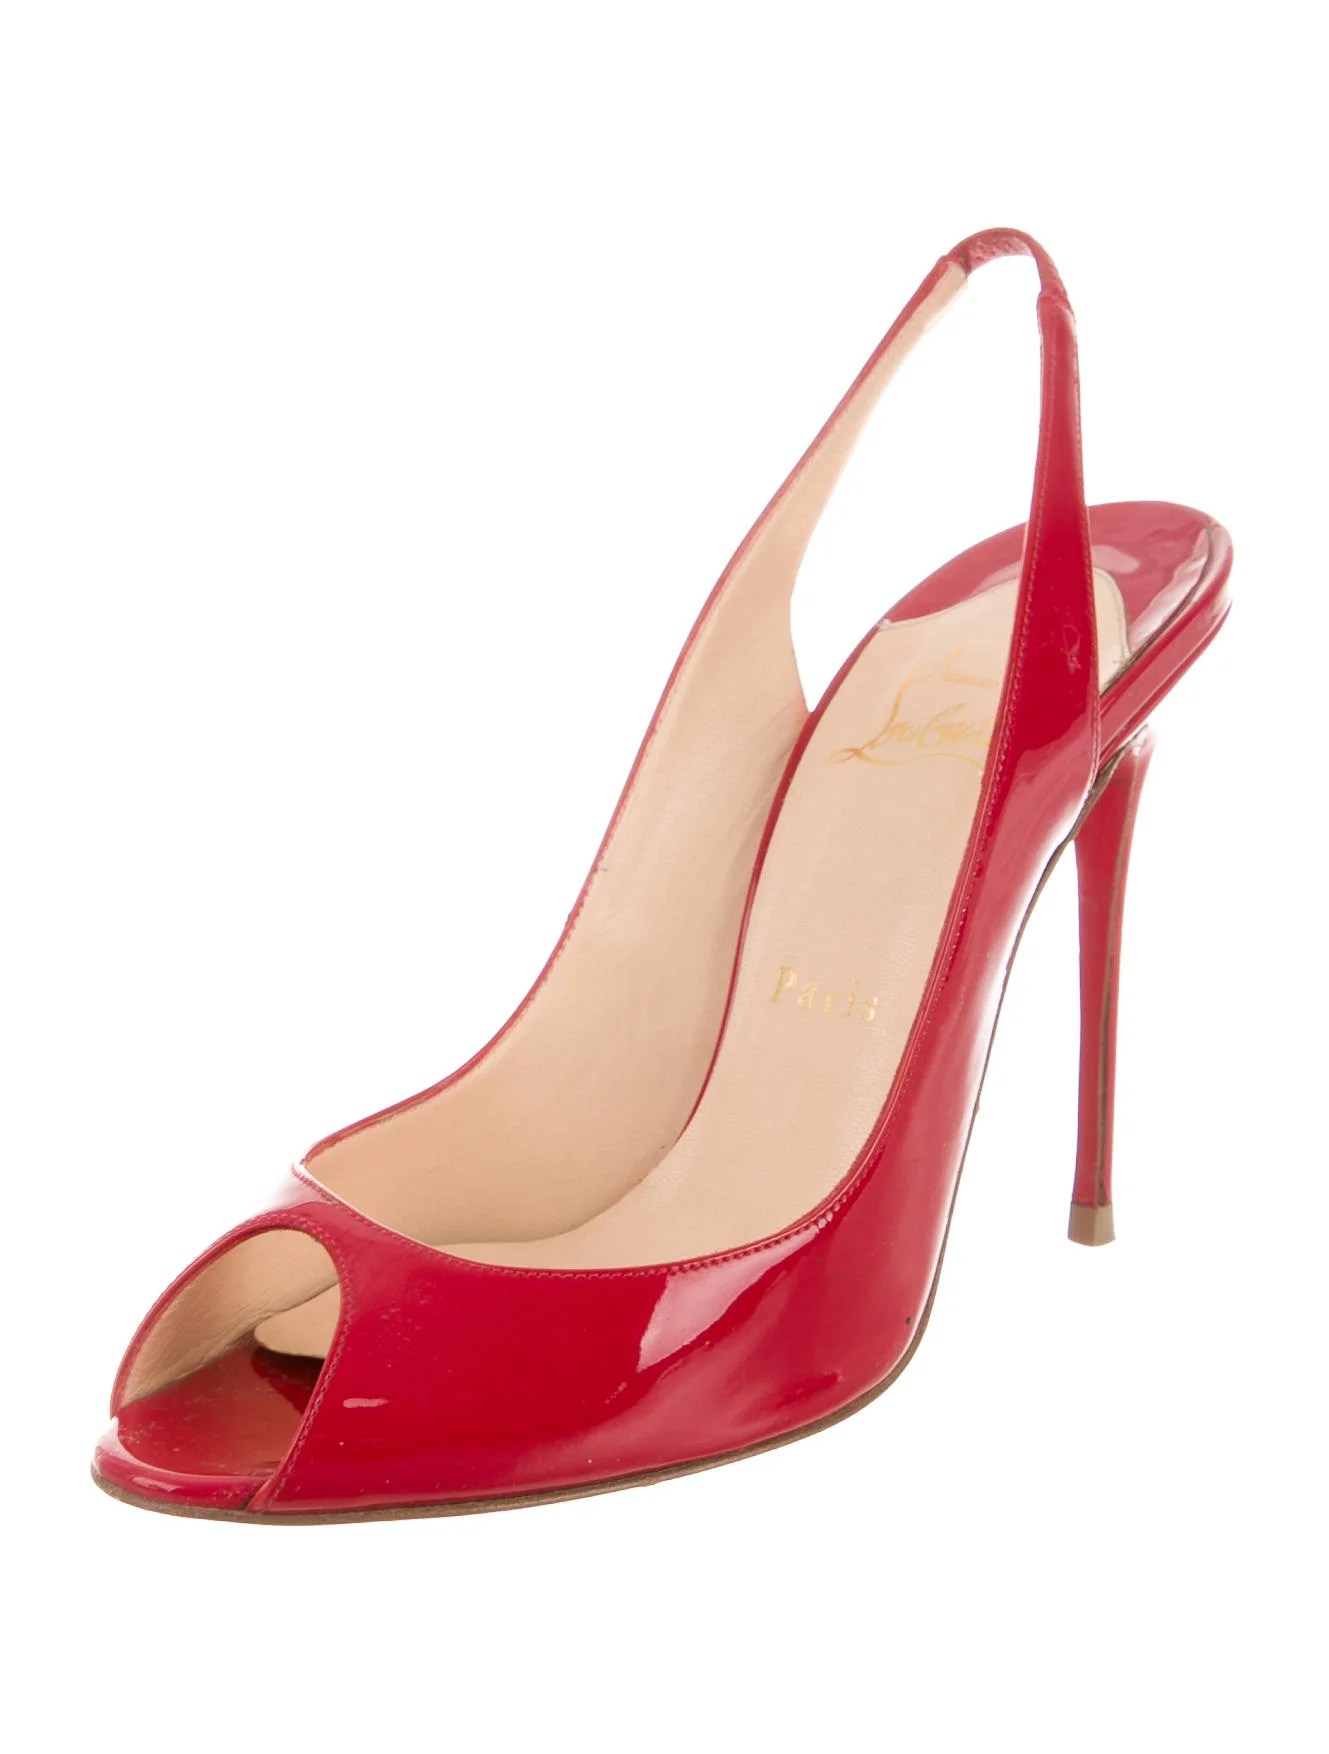 leather sling chairs camp folding christian louboutin patent slingback pumps - shoes cht57435 | the realreal